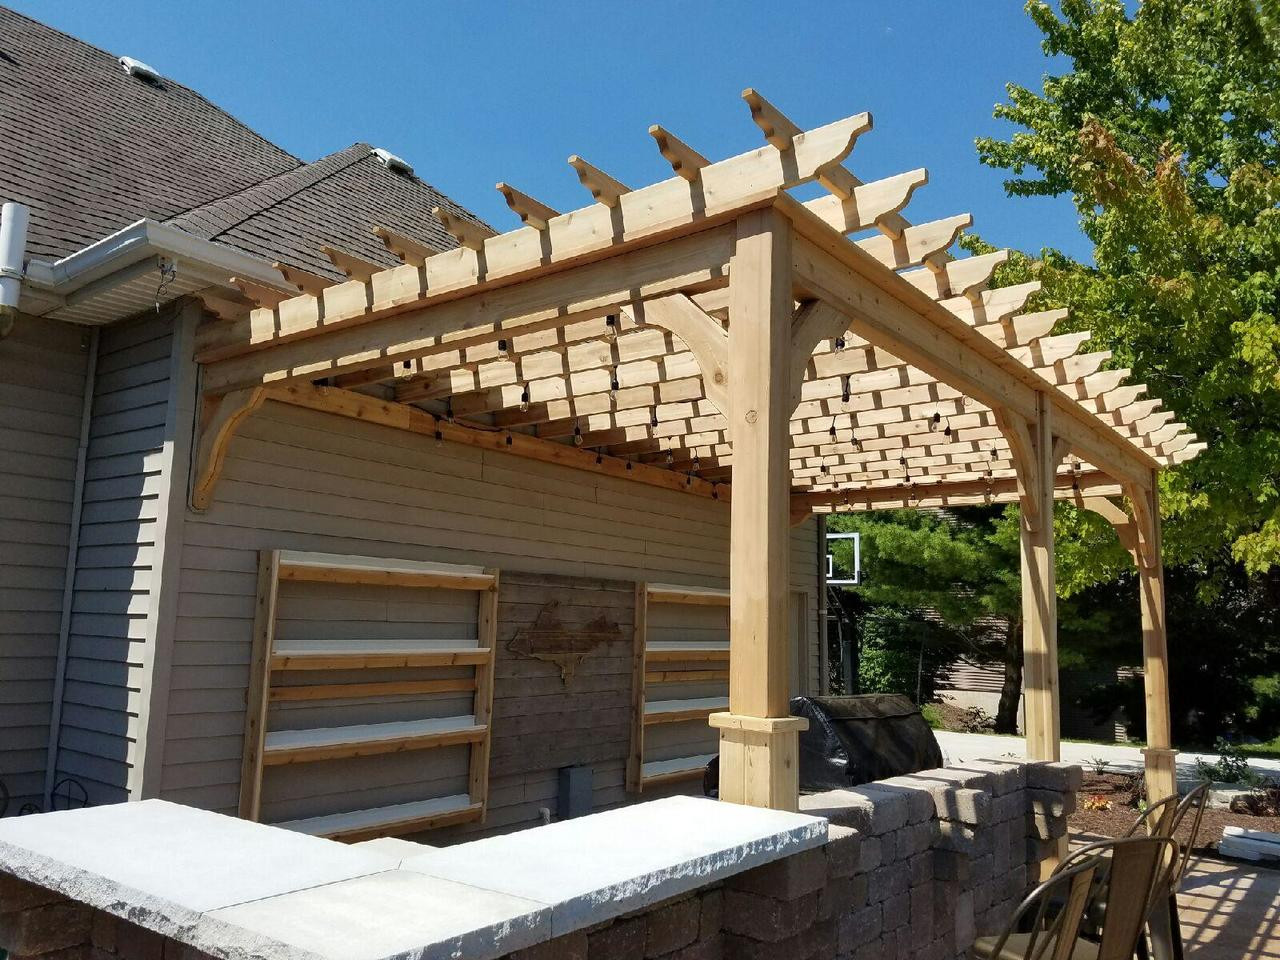 Attached Pergola Kits Wester Red Cedar Any And All Sizes